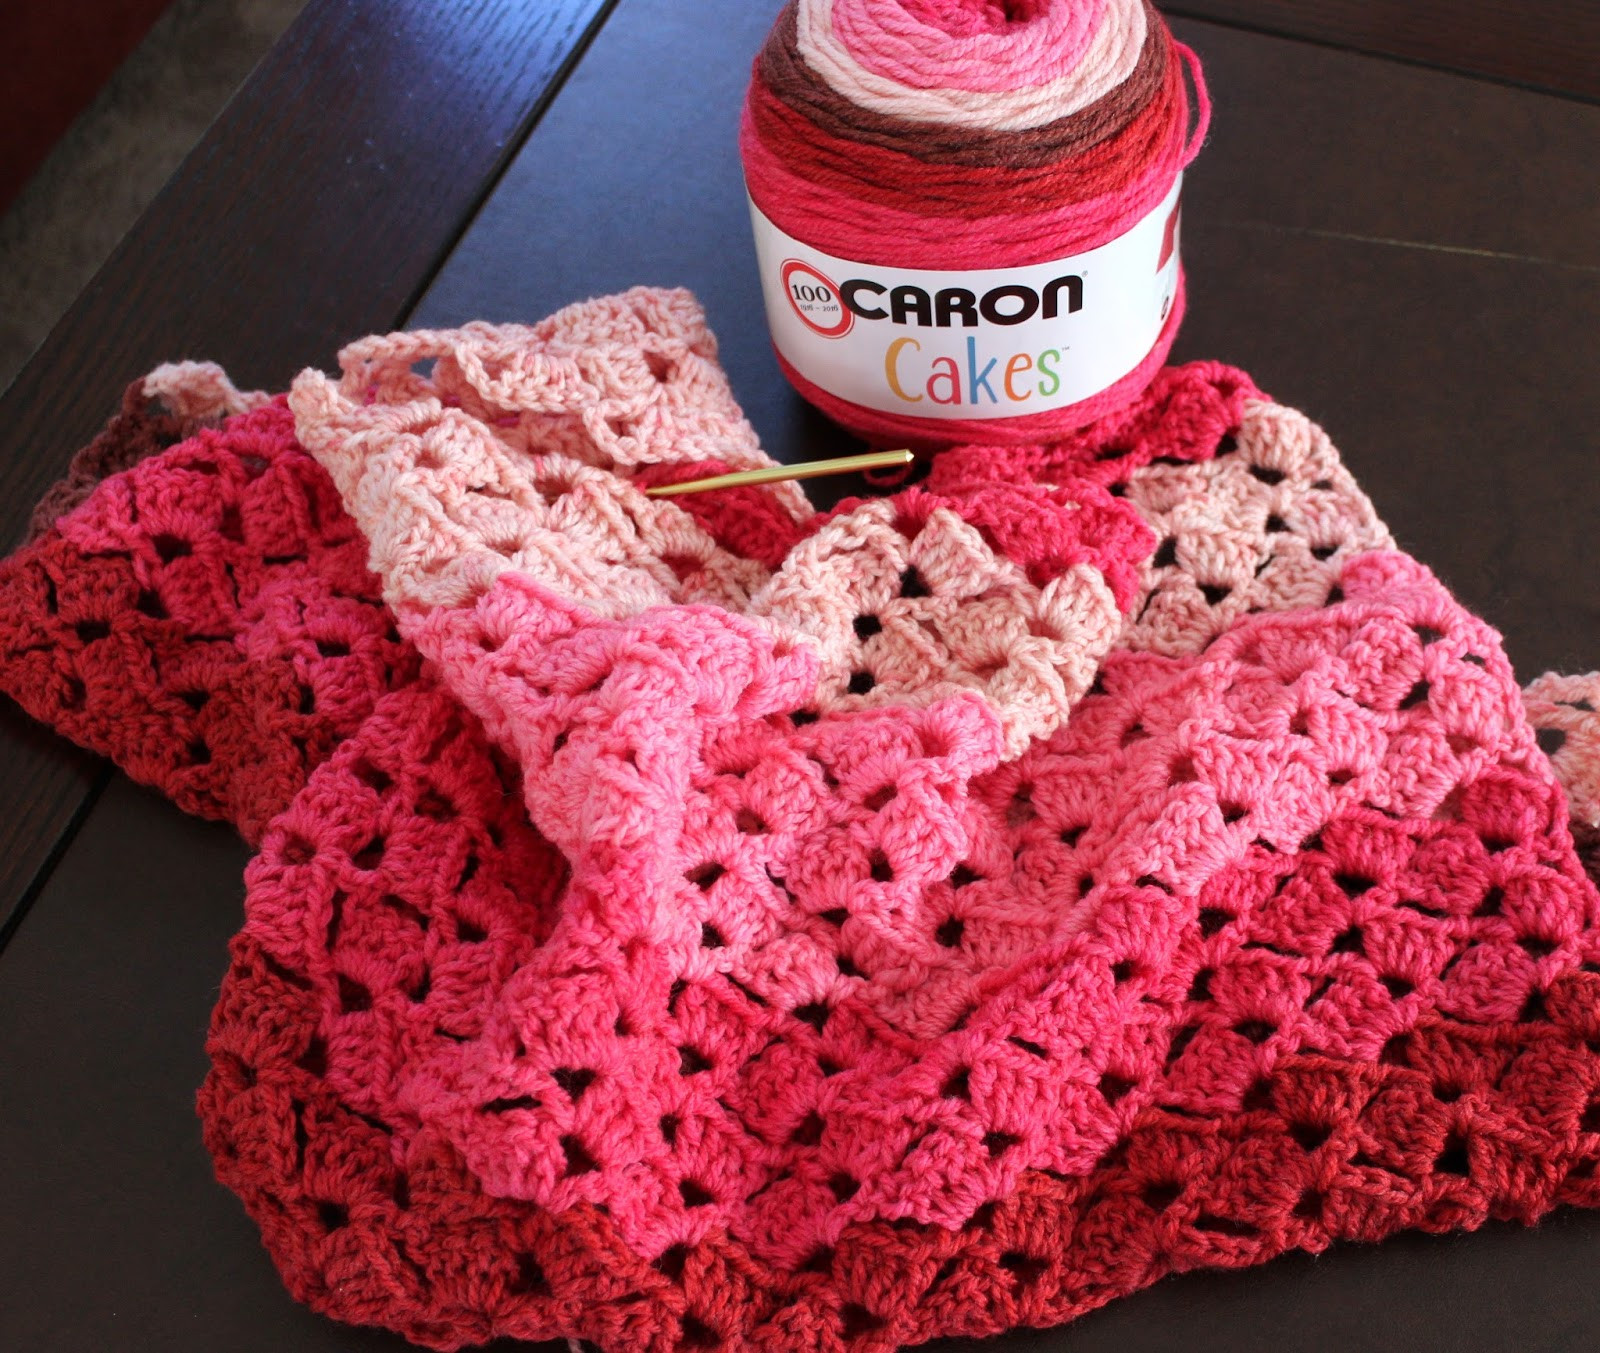 Best Of Lacy Crochet My First Caron Cakes In Cherry Chip Yarn Review Caron Cakes Yarn Patterns Crochet Of Great 45 Models Caron Cakes Yarn Patterns Crochet